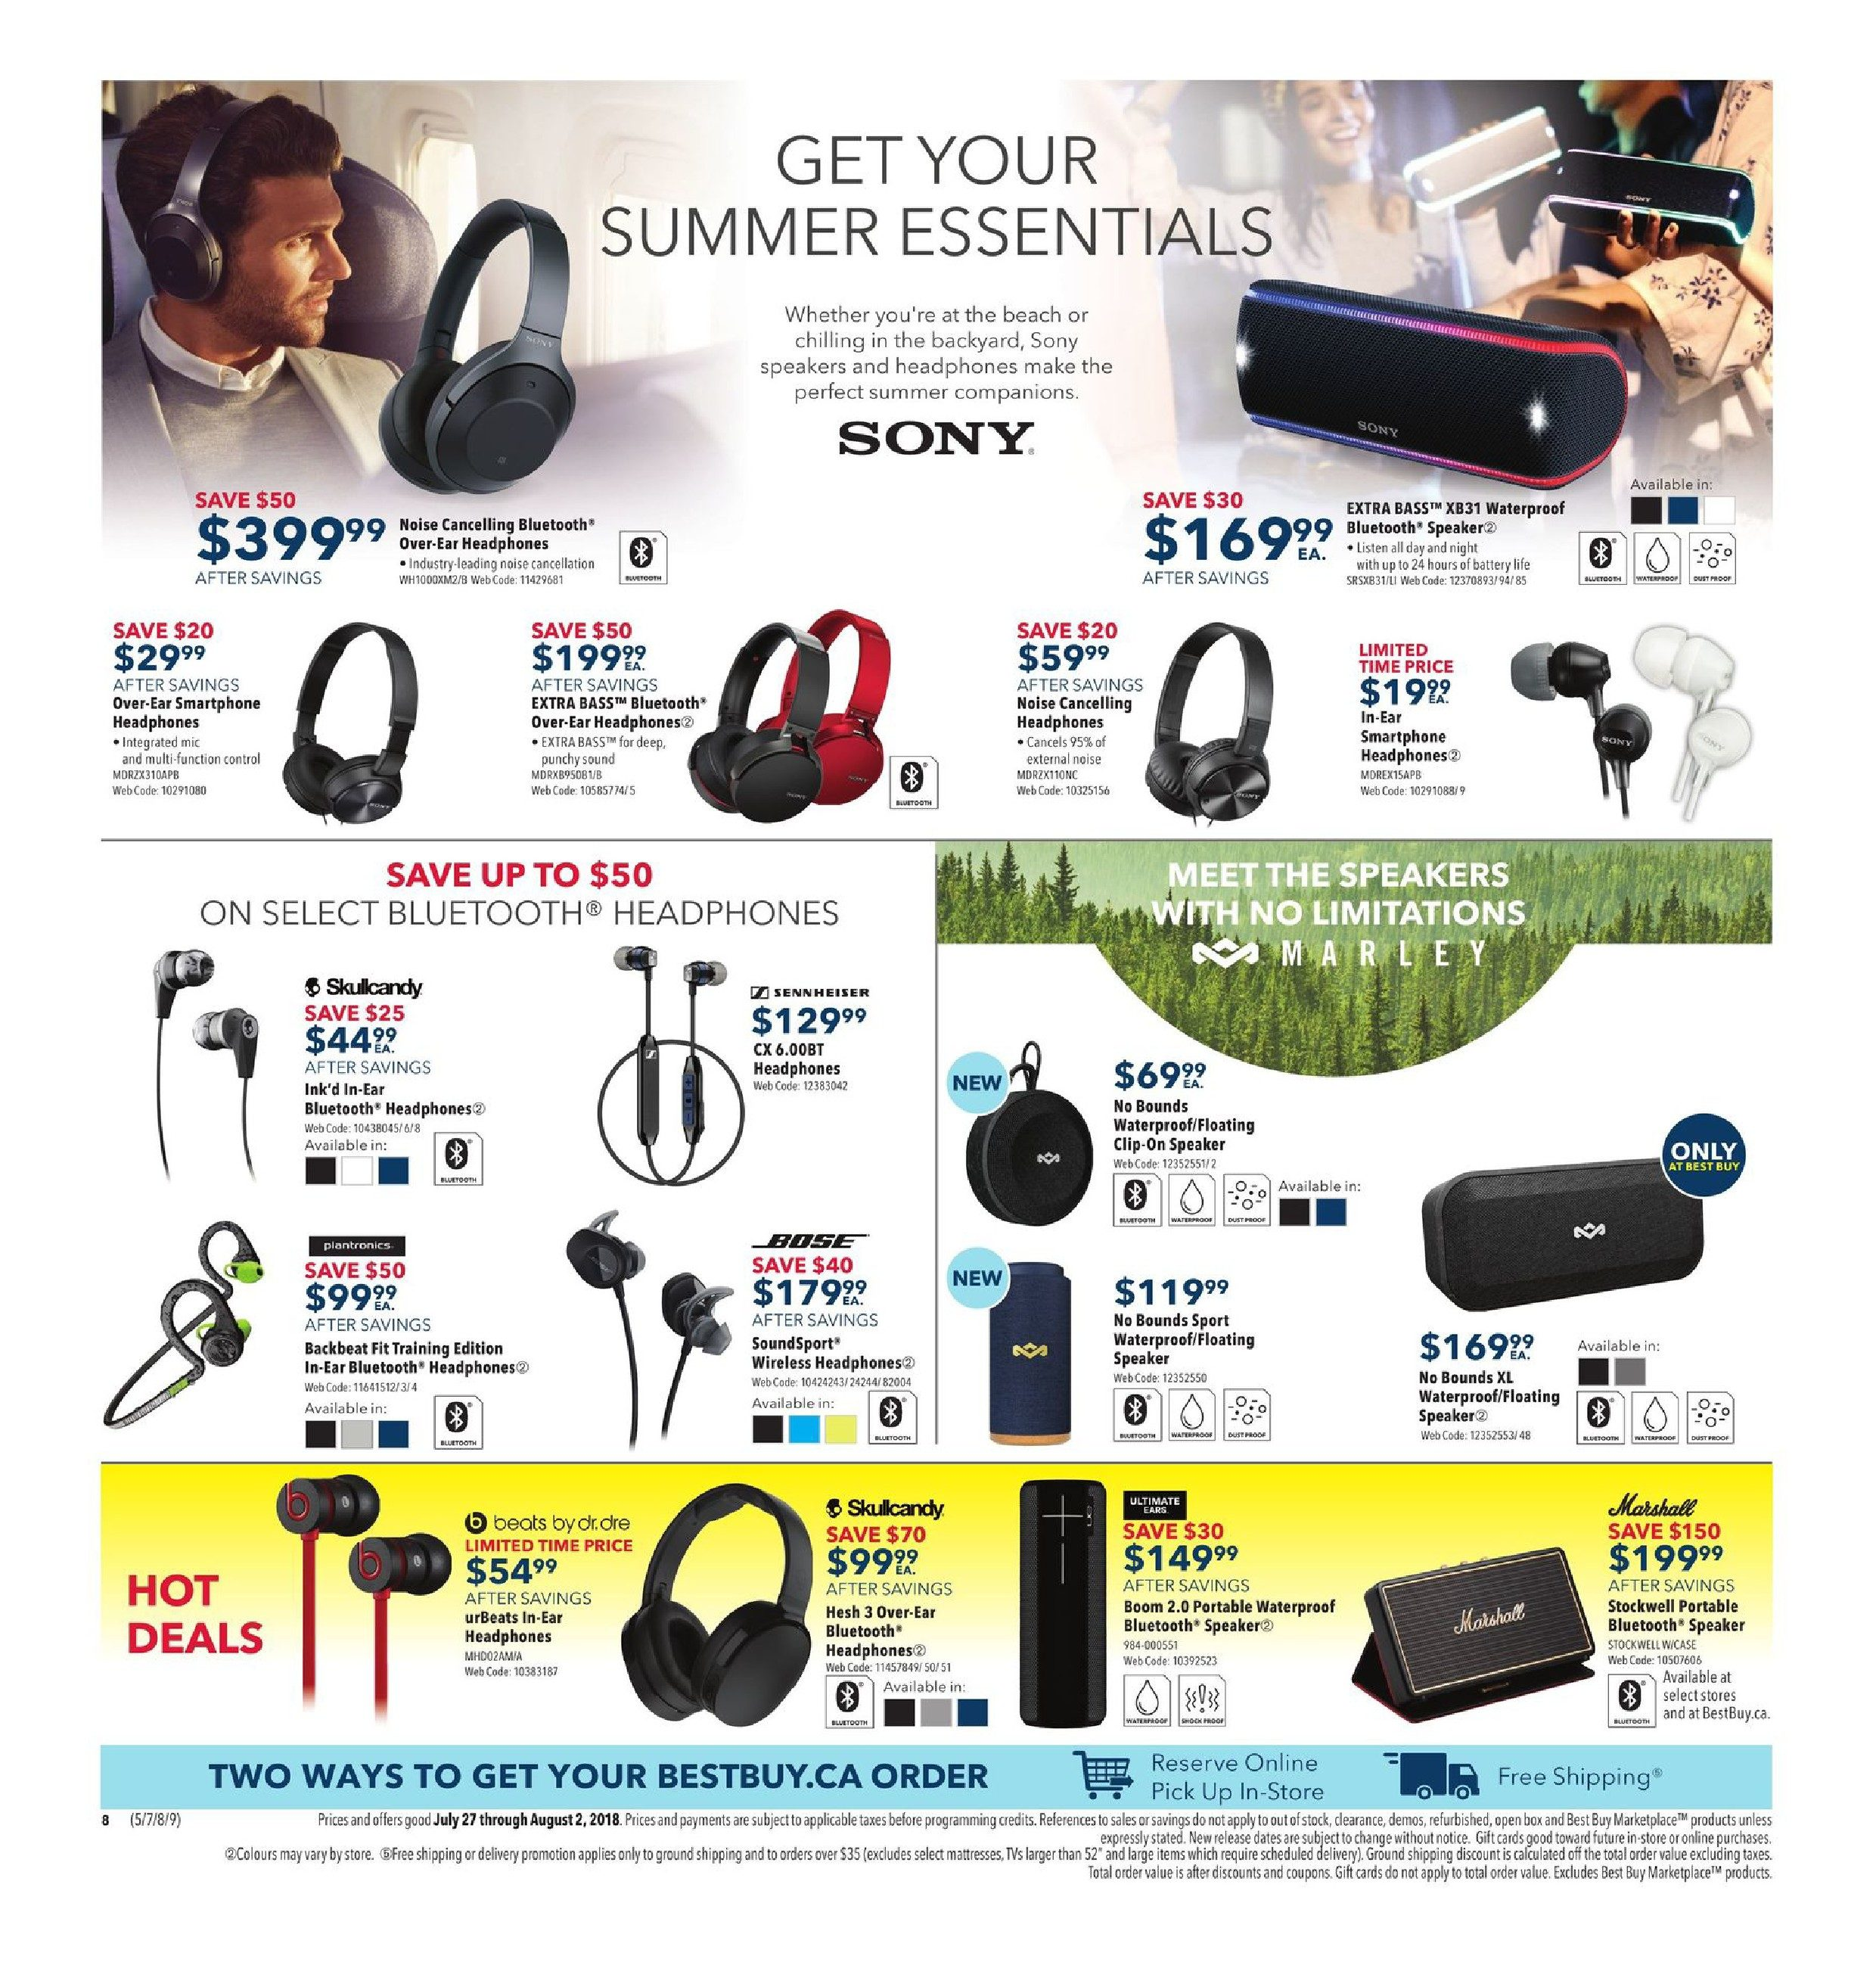 Best Buy Weekly Flyer Rule Back To School Jul 27 Aug My Dryer Maytaghas A Three Wire Electric Cord The Wires 2